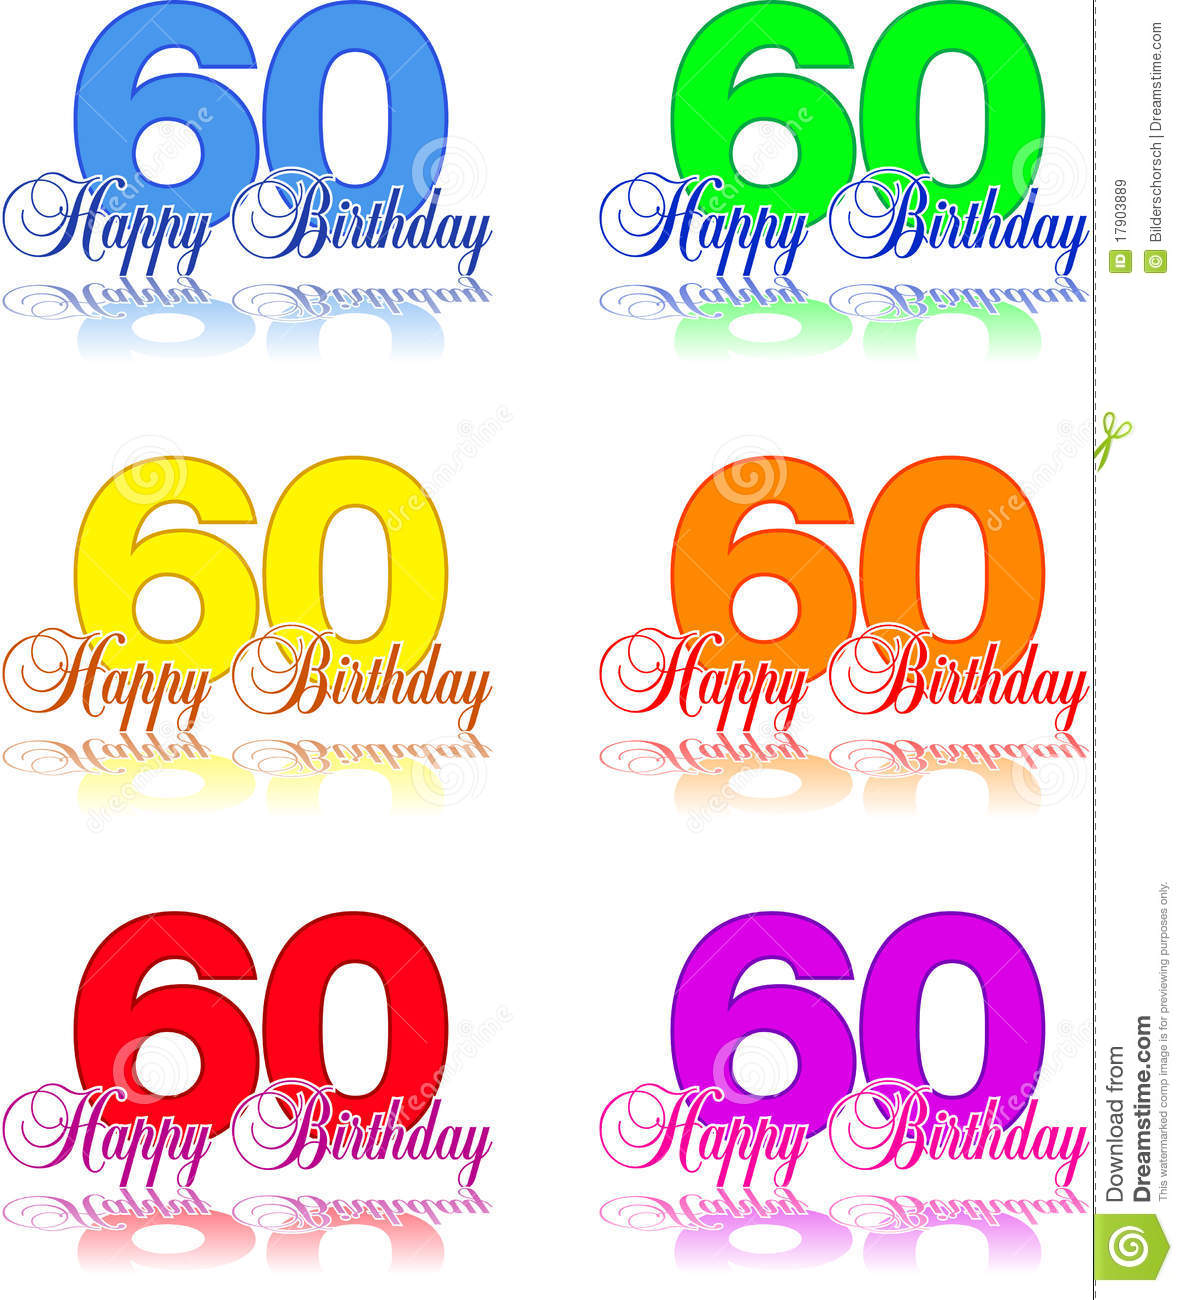 Happy Birthday 60 Stock Vector Illustration Of Event